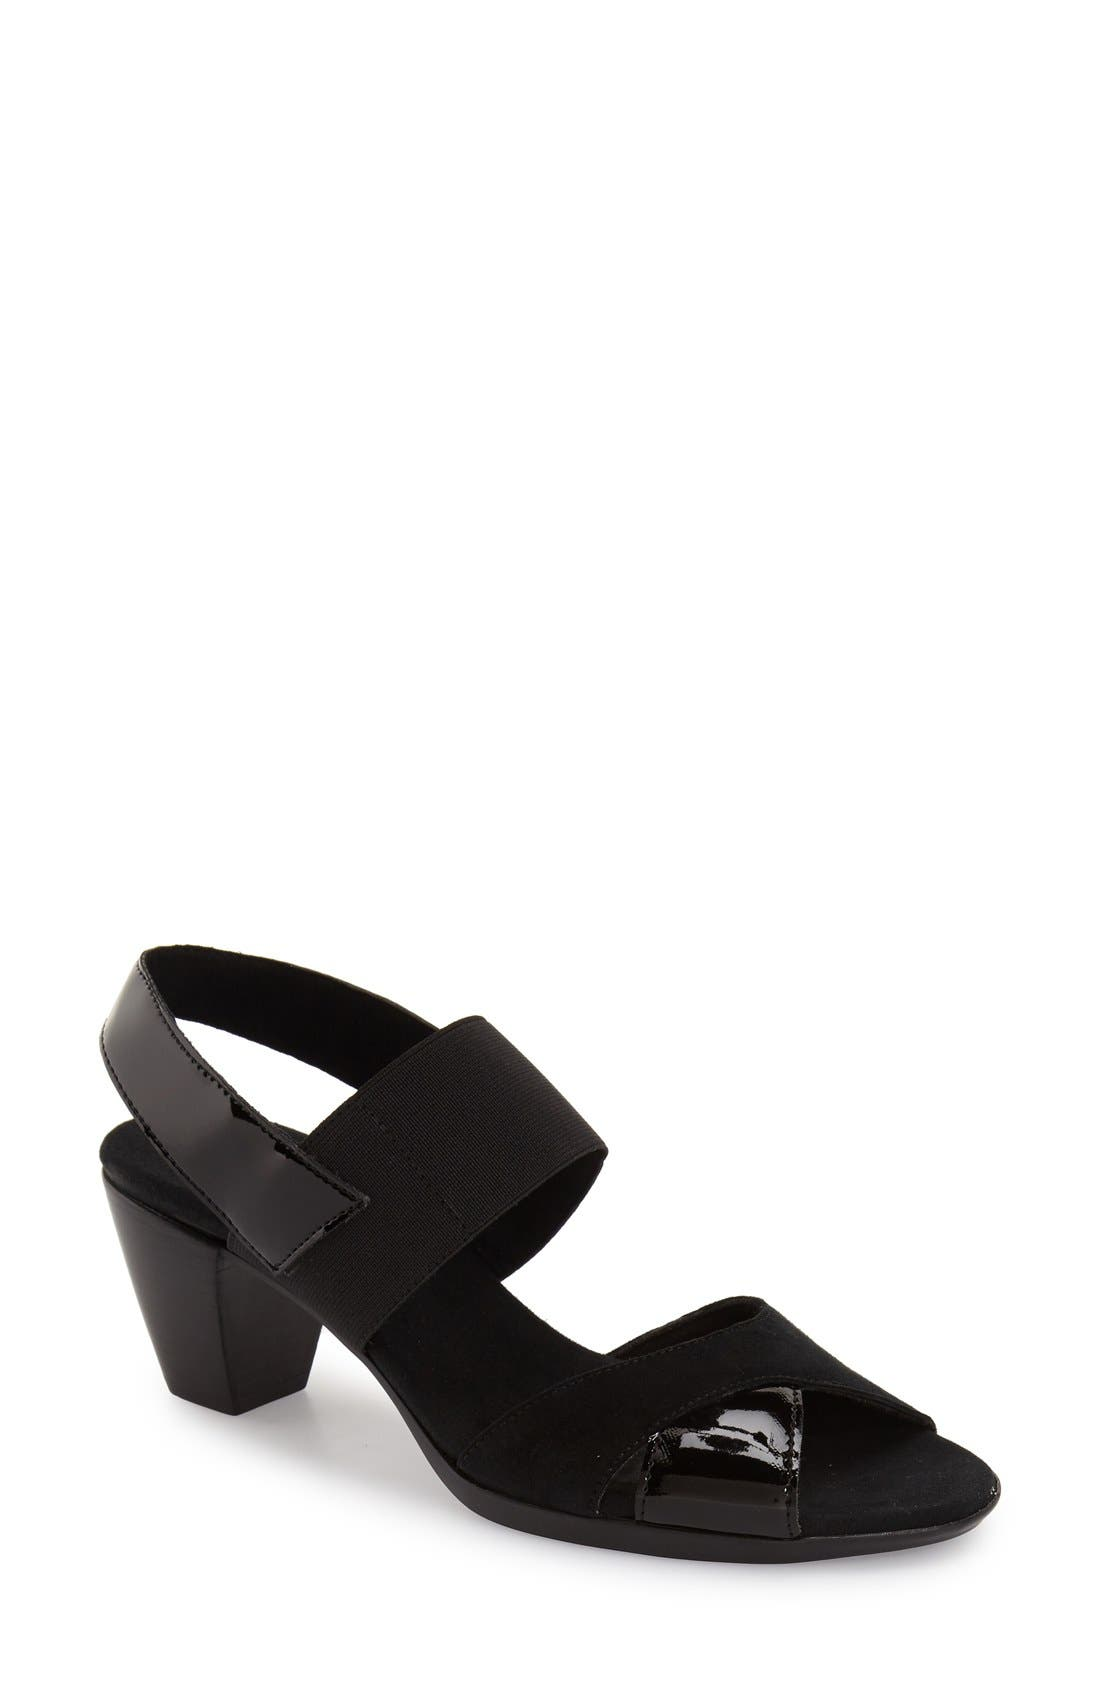 MUNRO Darling Mixed Finish Slingback Sandal